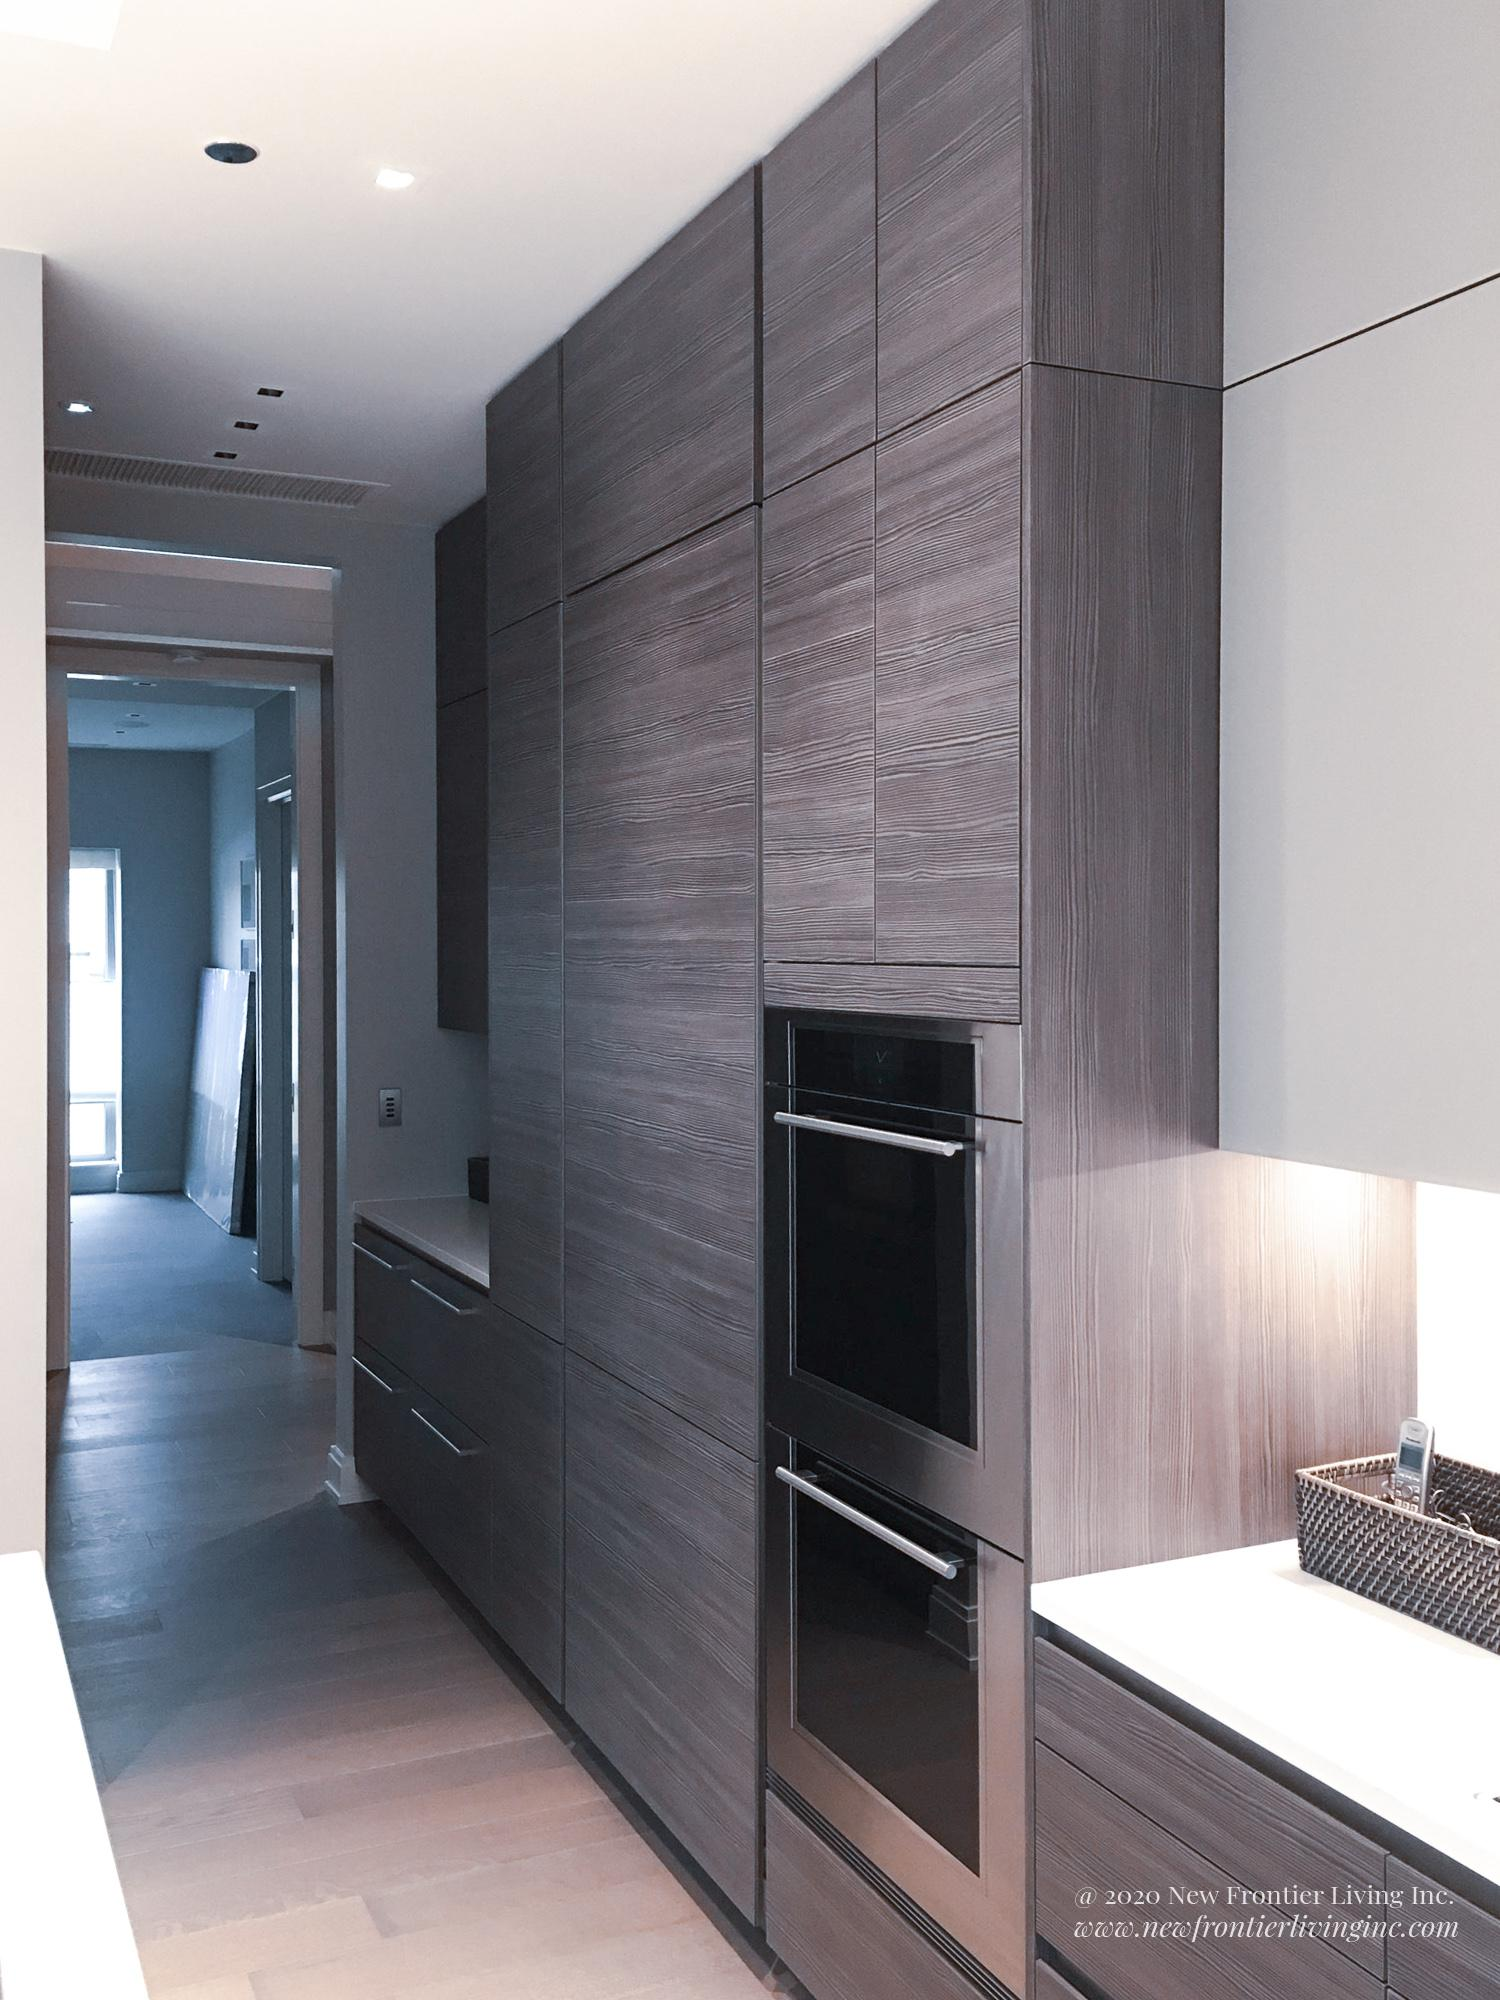 Dark kitchen paneling cabinetry and ovens